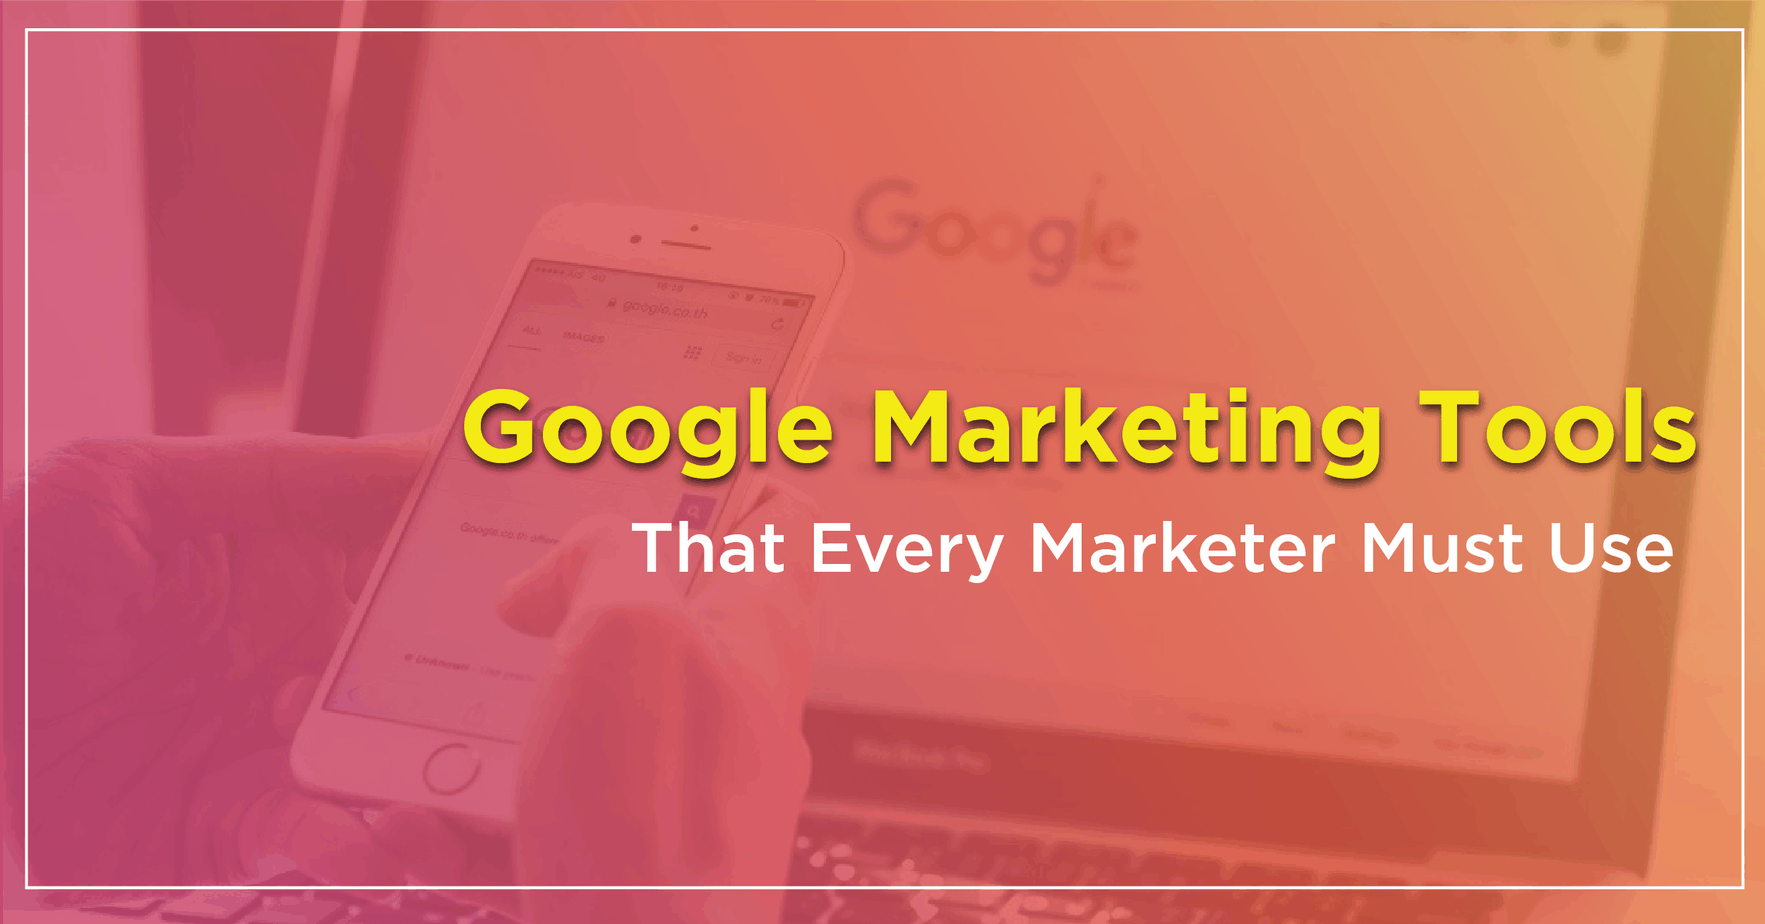 18 Google Marketing Tools That Every Marketer Should Use - One Search Pro Digital Marketing Agency